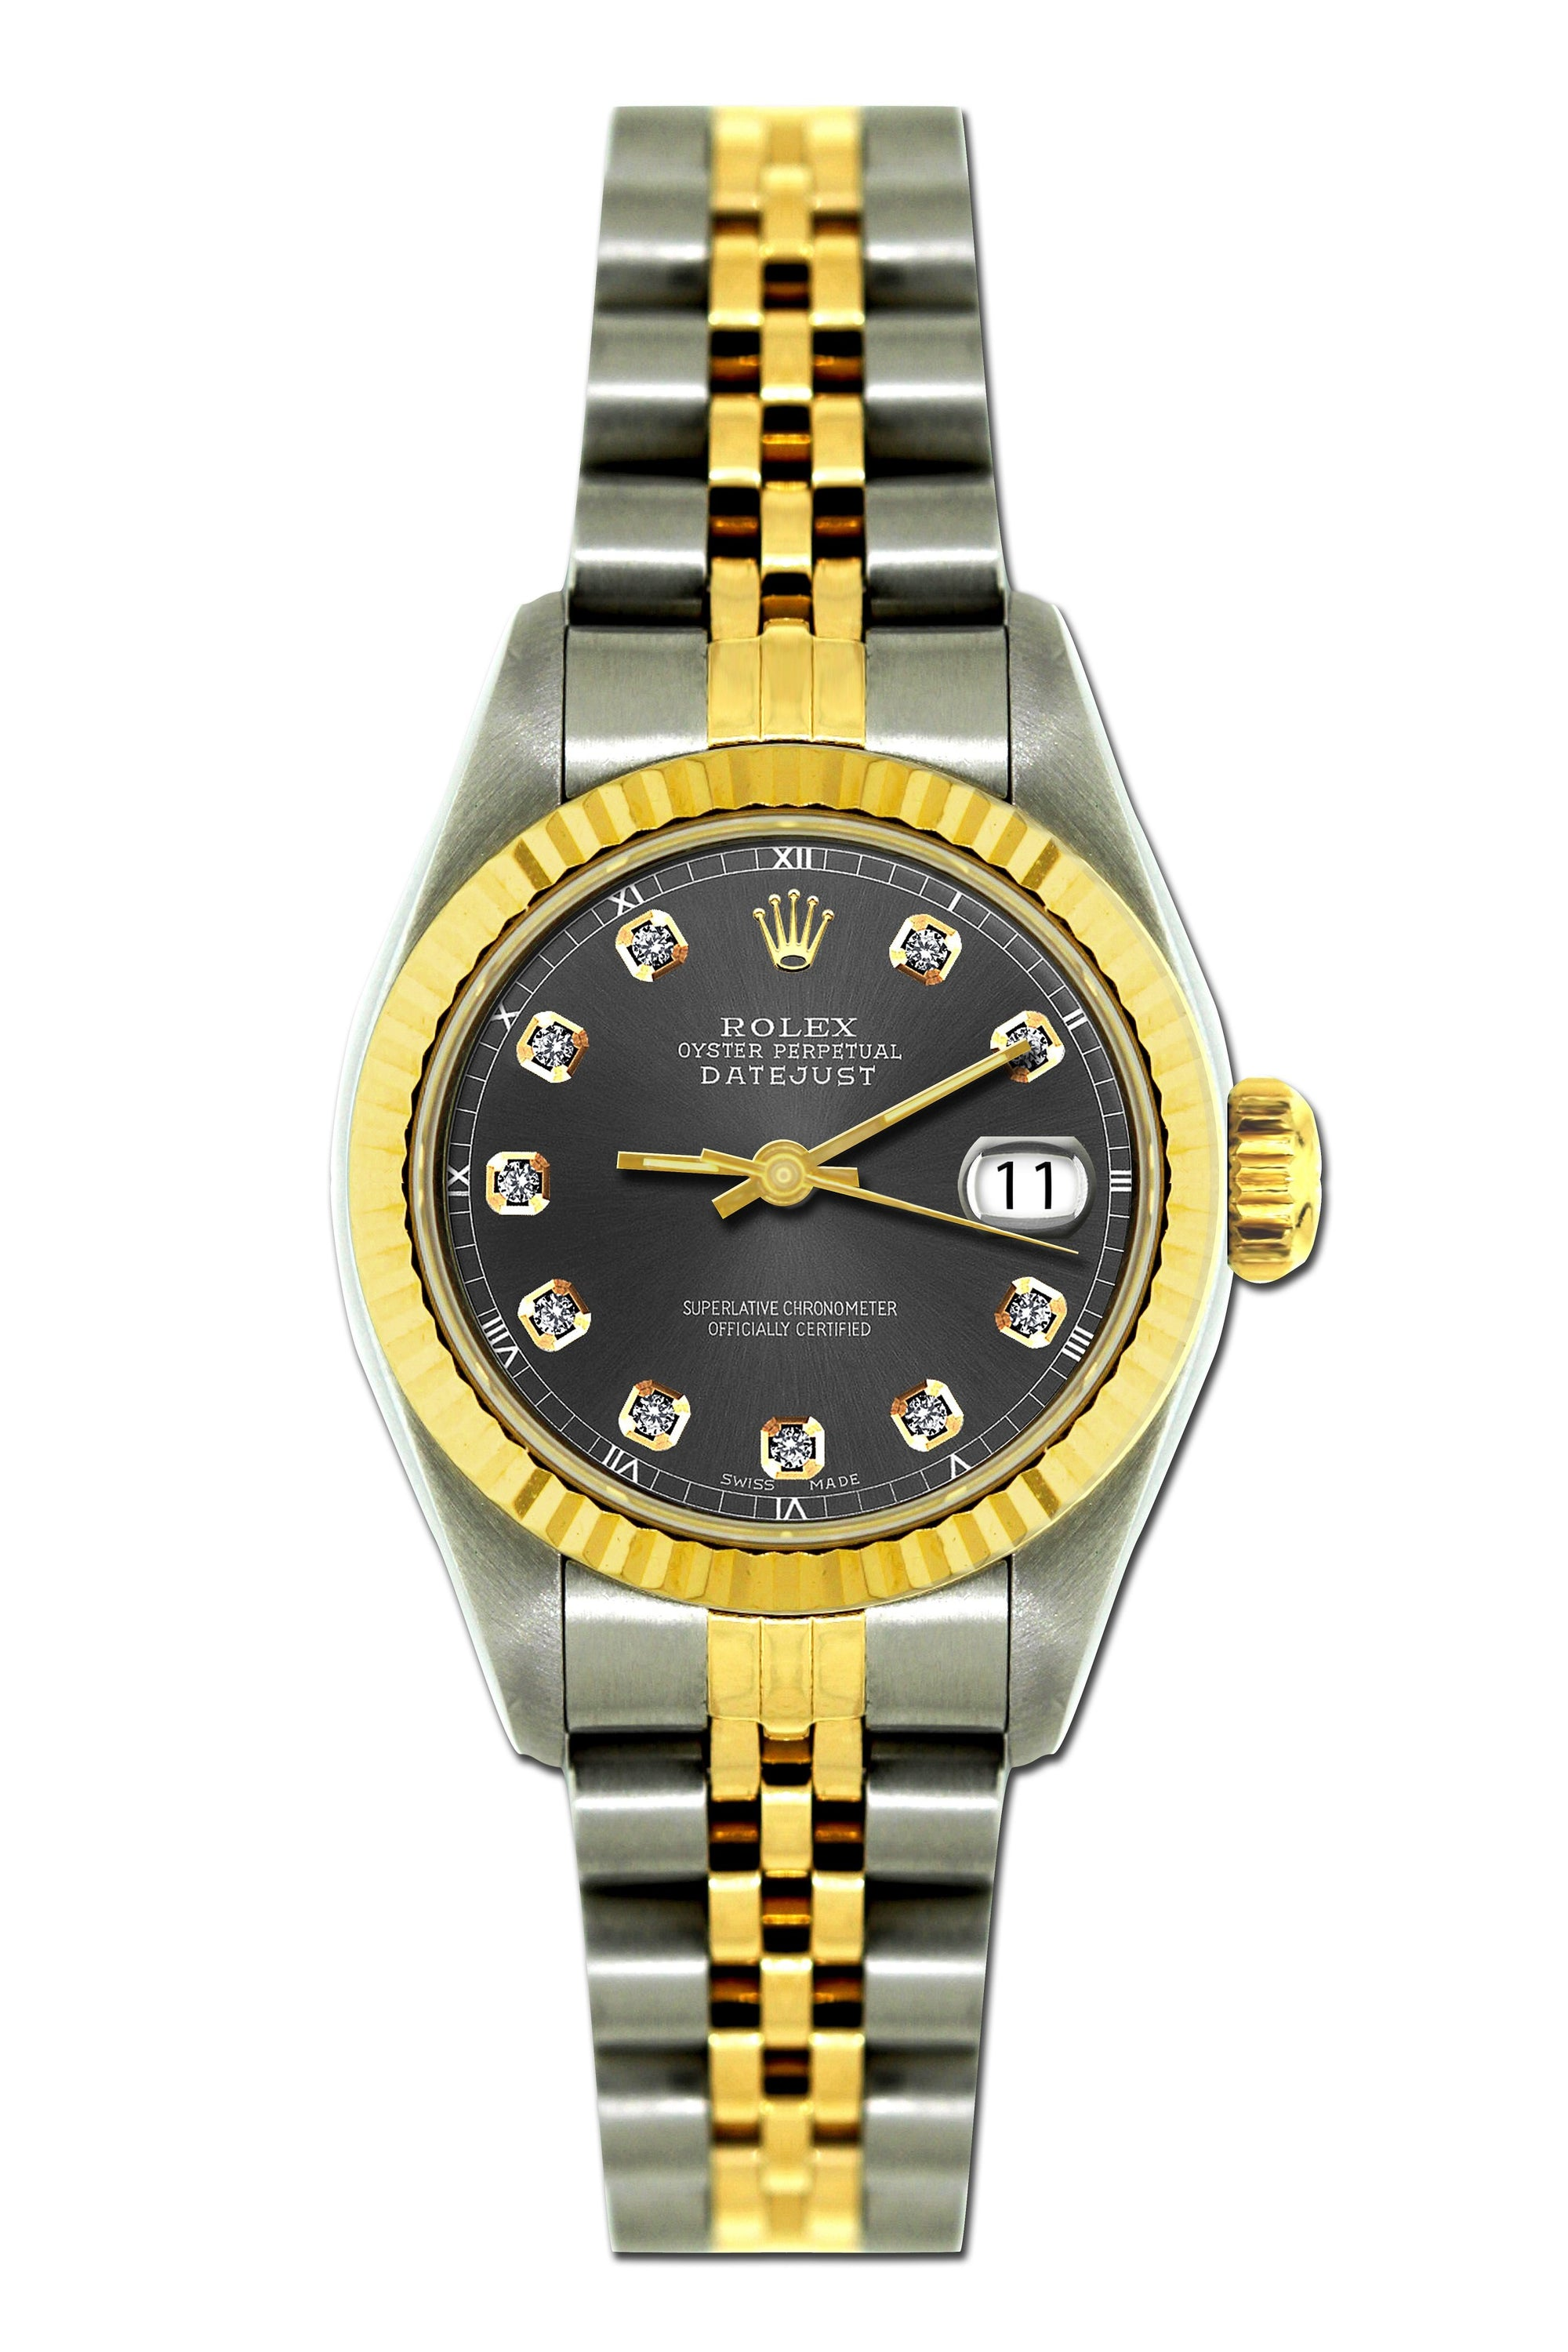 Rolex Datejust 26mm Yellow Gold and Stainless Steel Bracelet Borakay Gray Dial